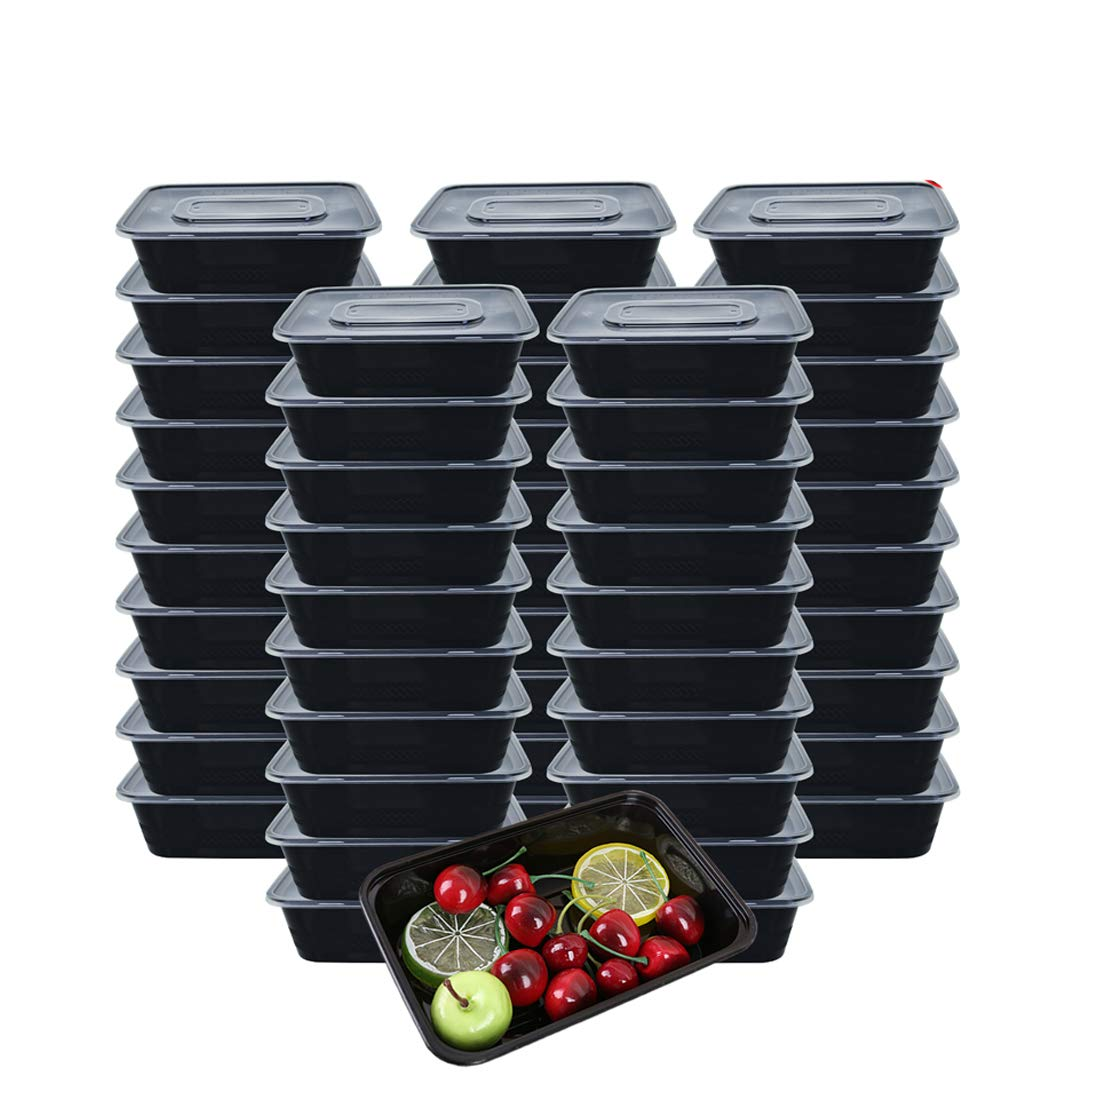 HOMEE Meal Prep Containers 50 Pack/26oz Reusable Food Storage Containers Bento Lunch Box with Lids Made of BPA Free Plastic, Stackable, Microwavable, Freezer, and Dishwasher Safe